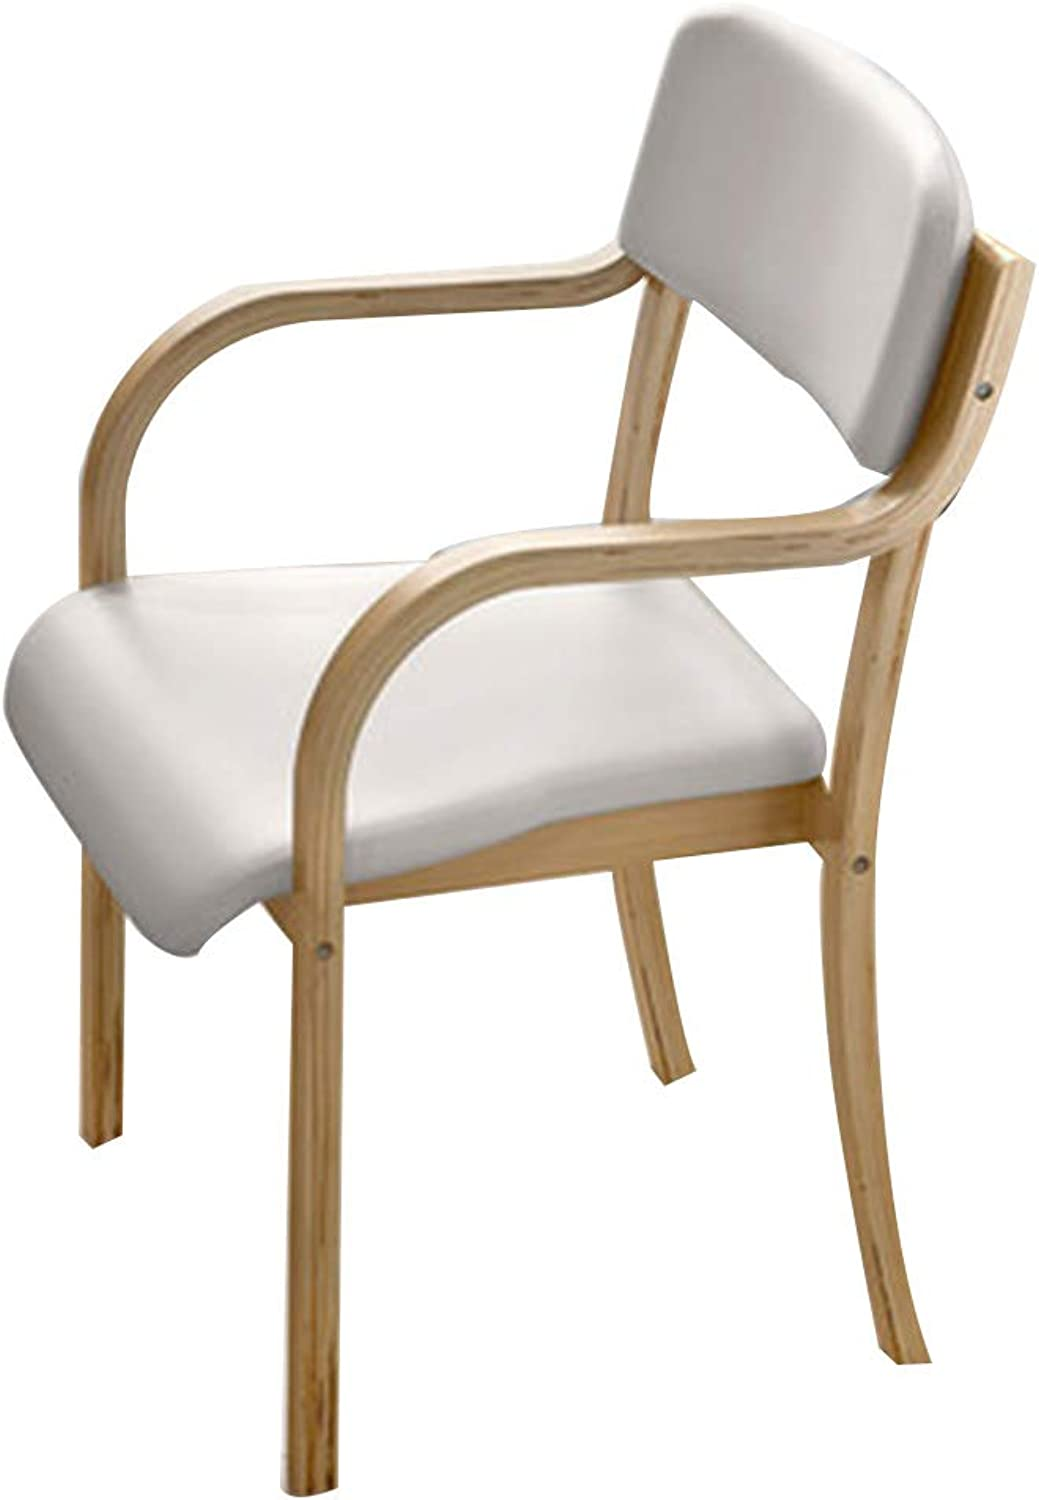 Chair Simple Chair Modern Simplicity Laminated Bentwood Frame Cotton and Linen Finish Balcony Restaurant (color   H)